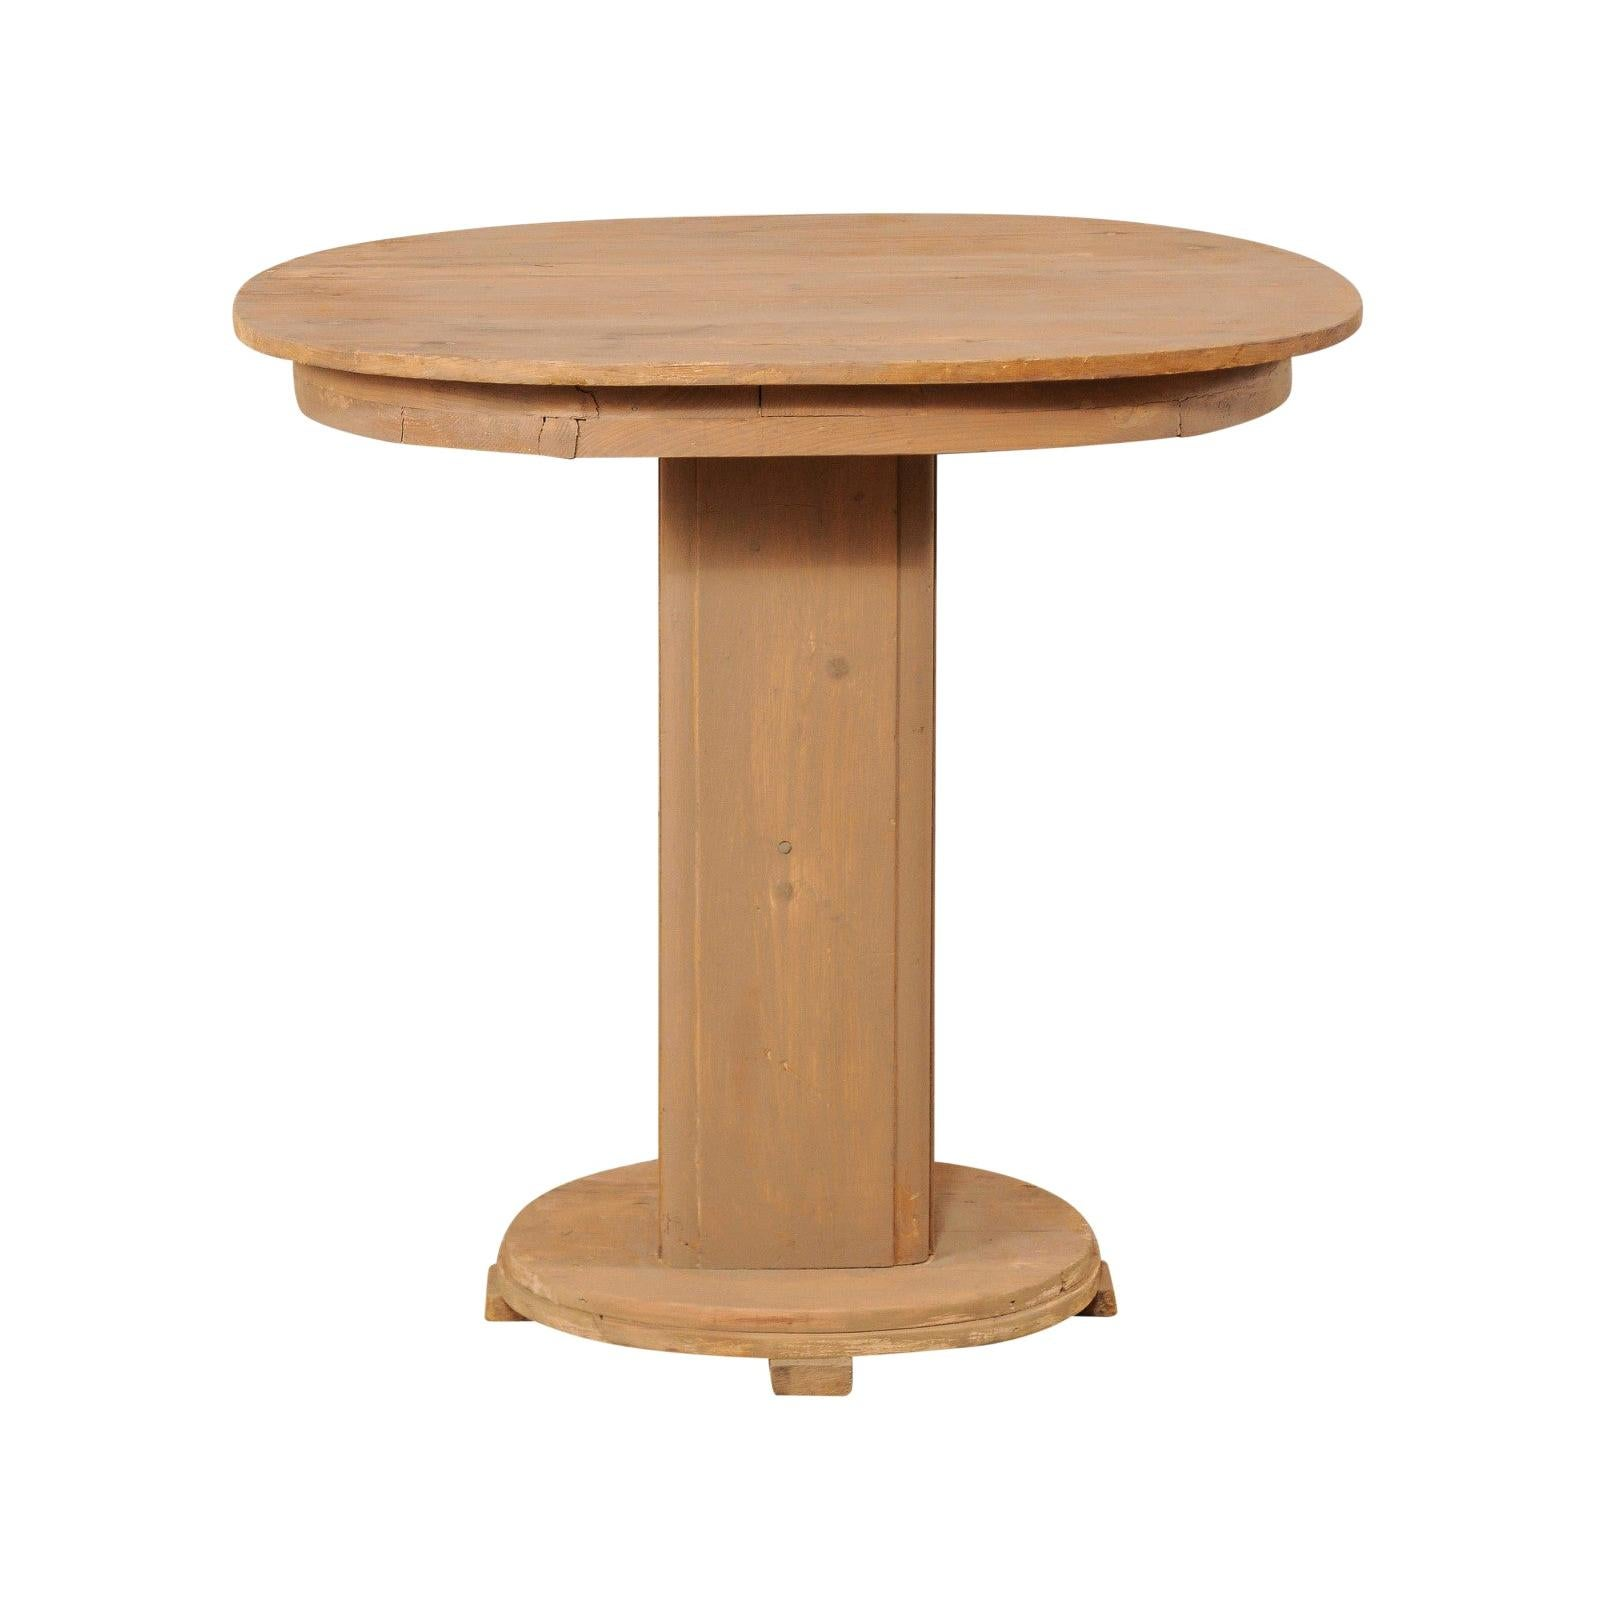 French Mid-20th Century Painted Wood Oval Top Pedestal Table